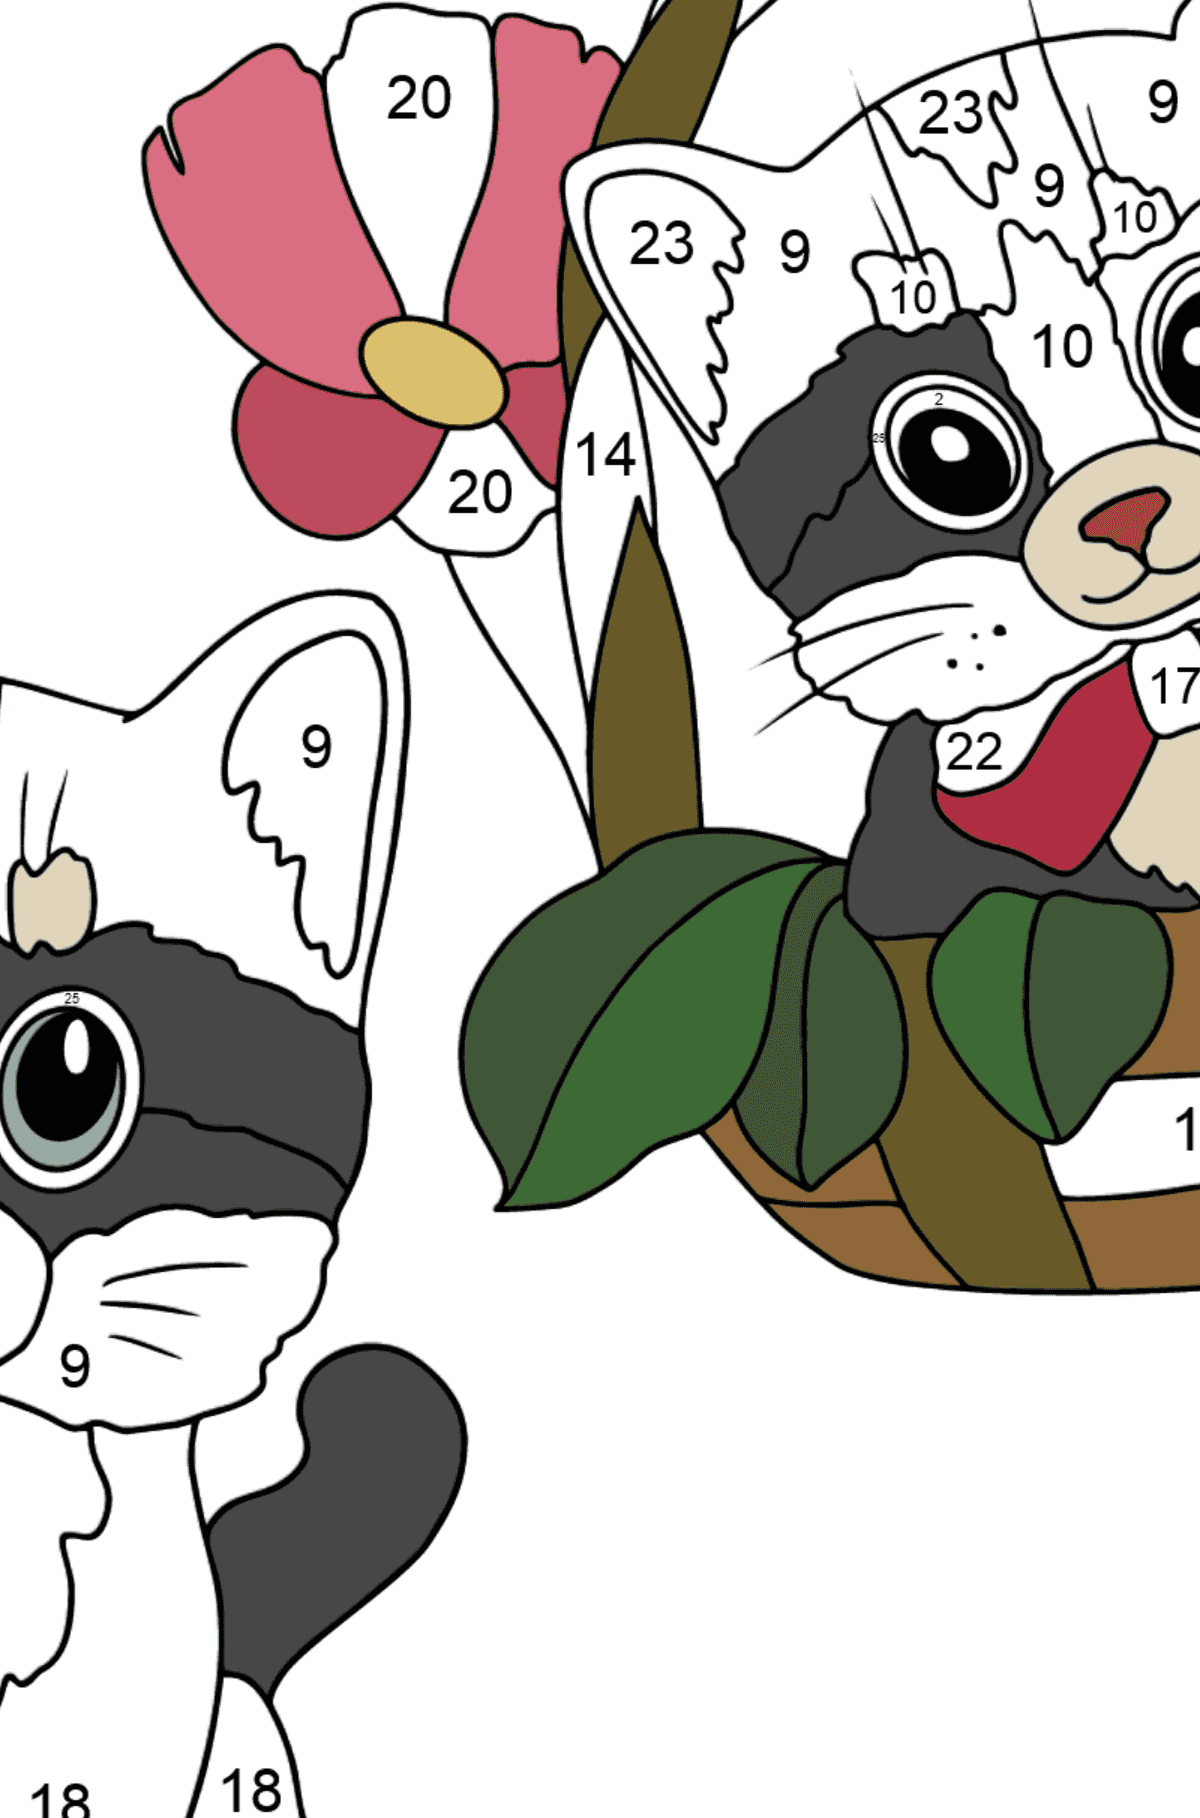 Coloring Page - Kittens are Looking Around Cautiously - Coloring by Numbers for Kids